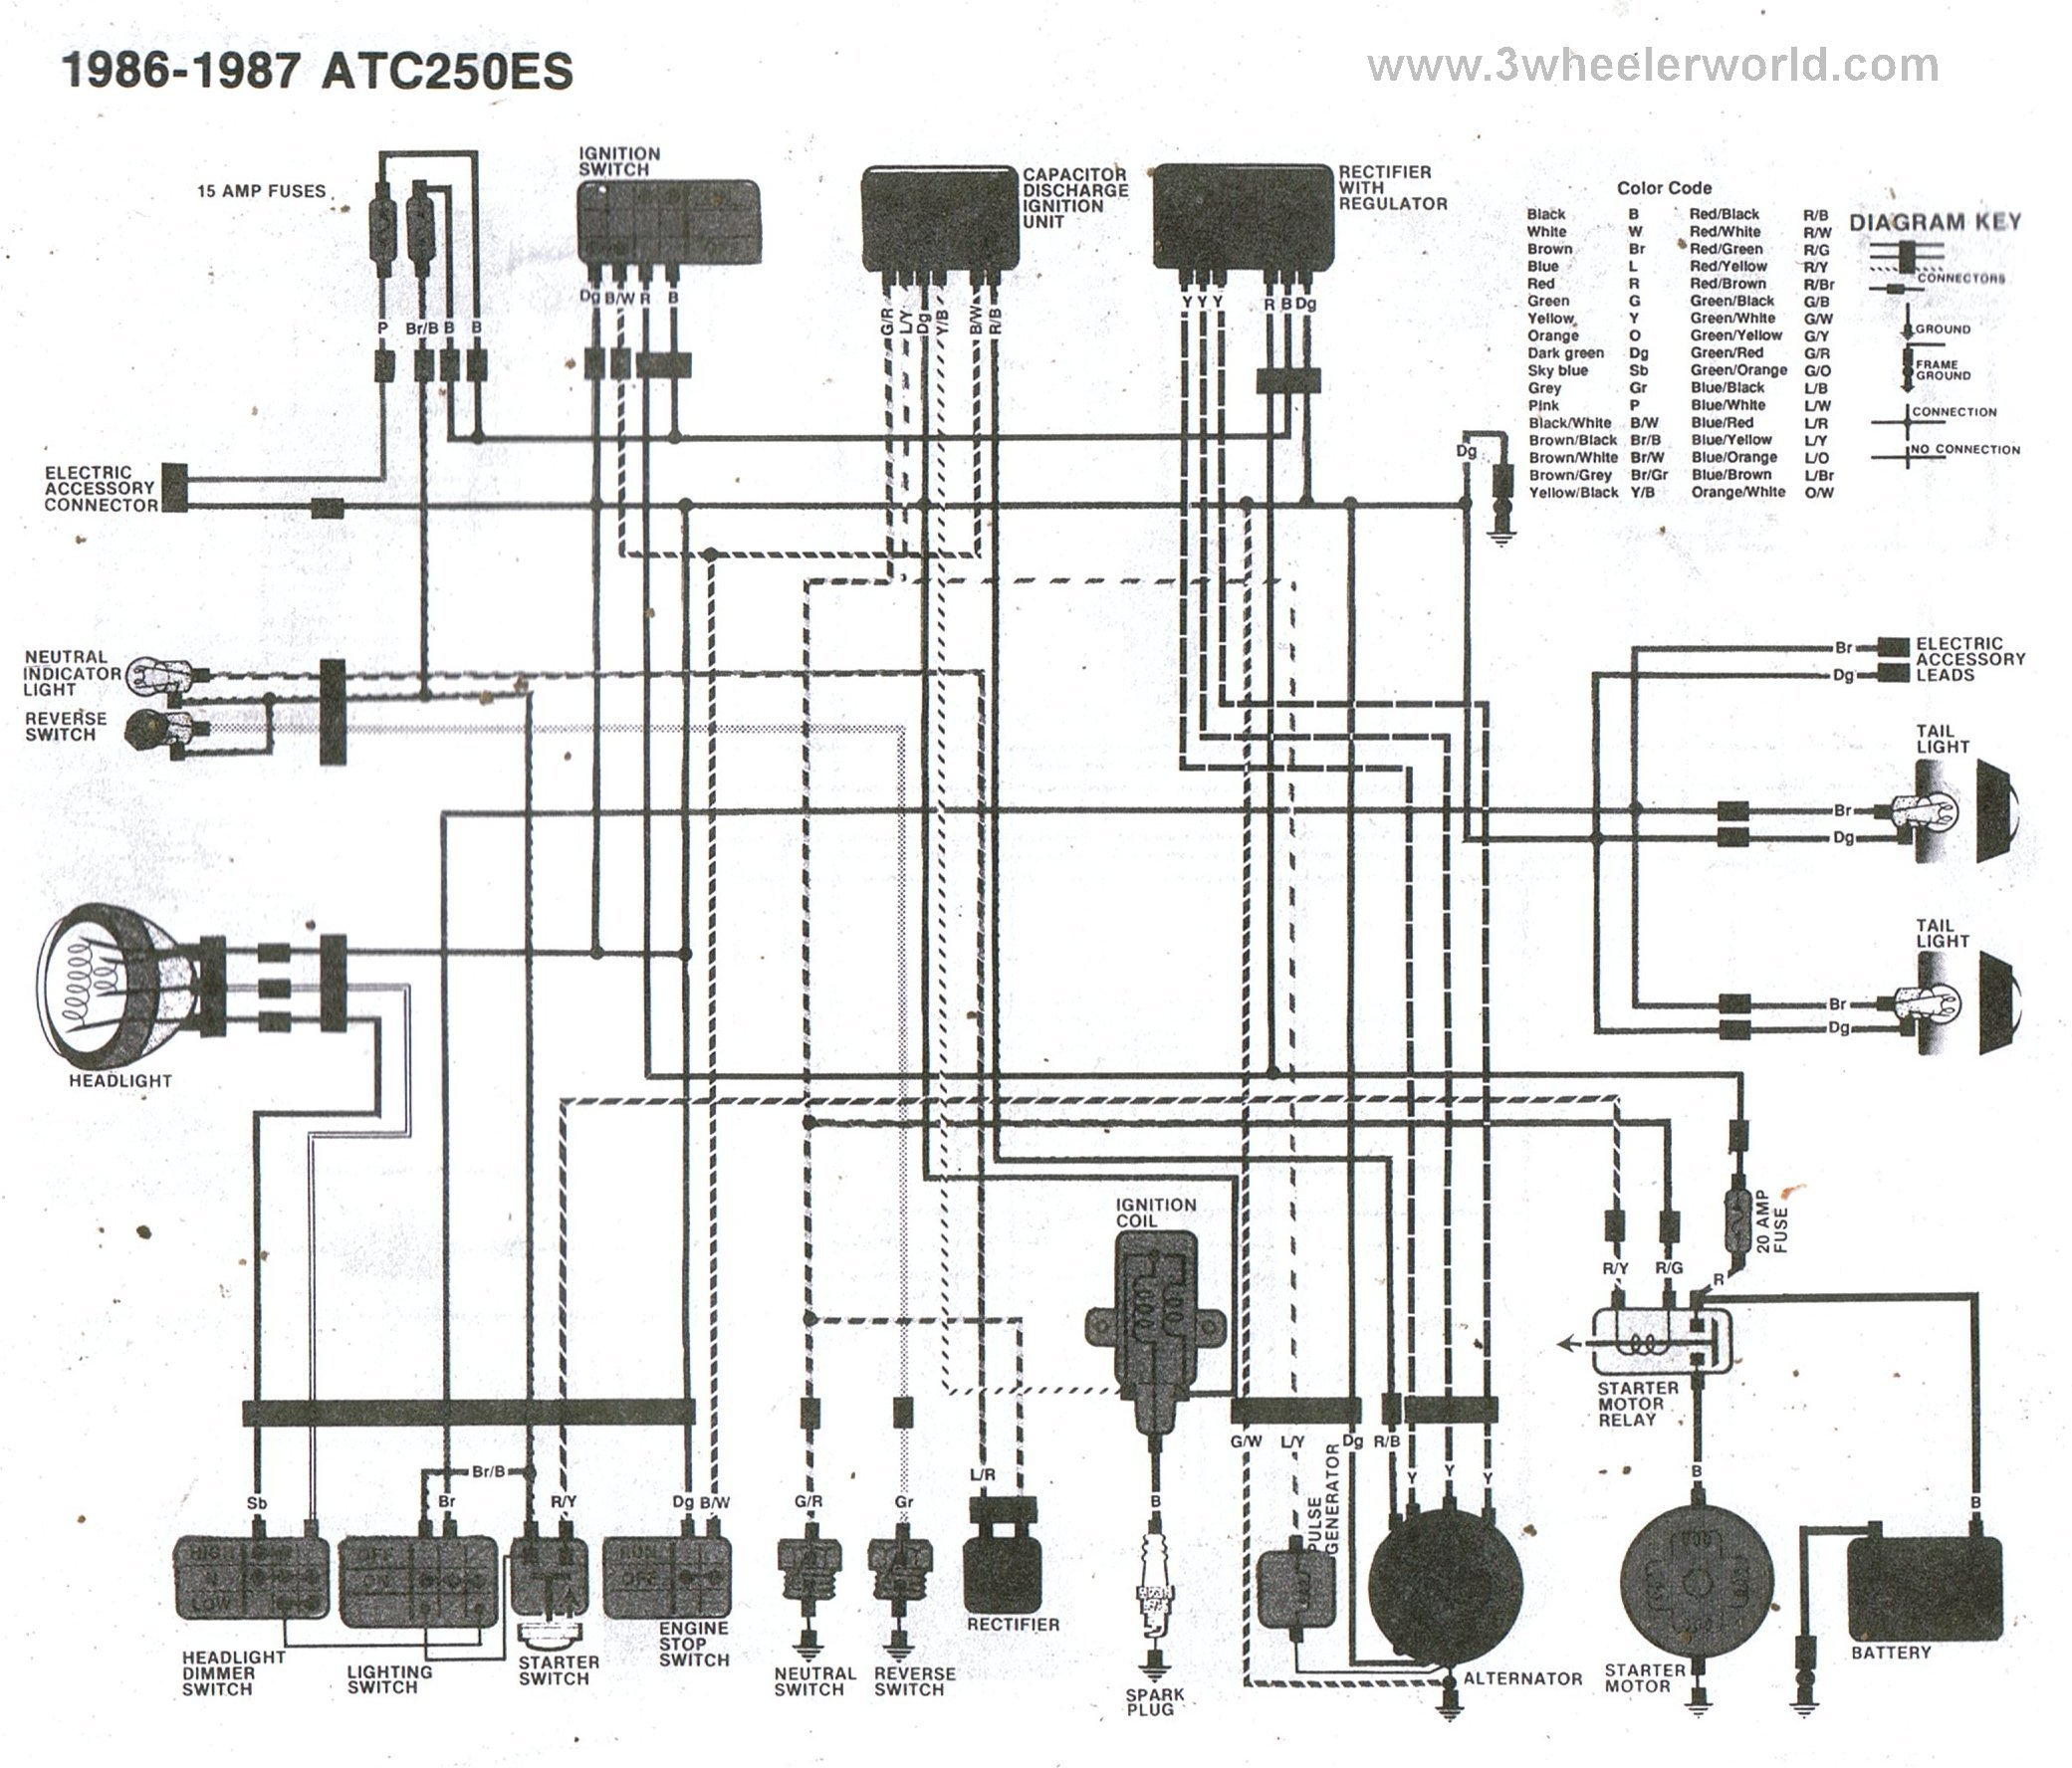 84 atc 125 wiring diagram online wiring diagram84 atc 125 wiring diagram 11 23 kenmo lp de \\u202284 atc 125 wiring diagram